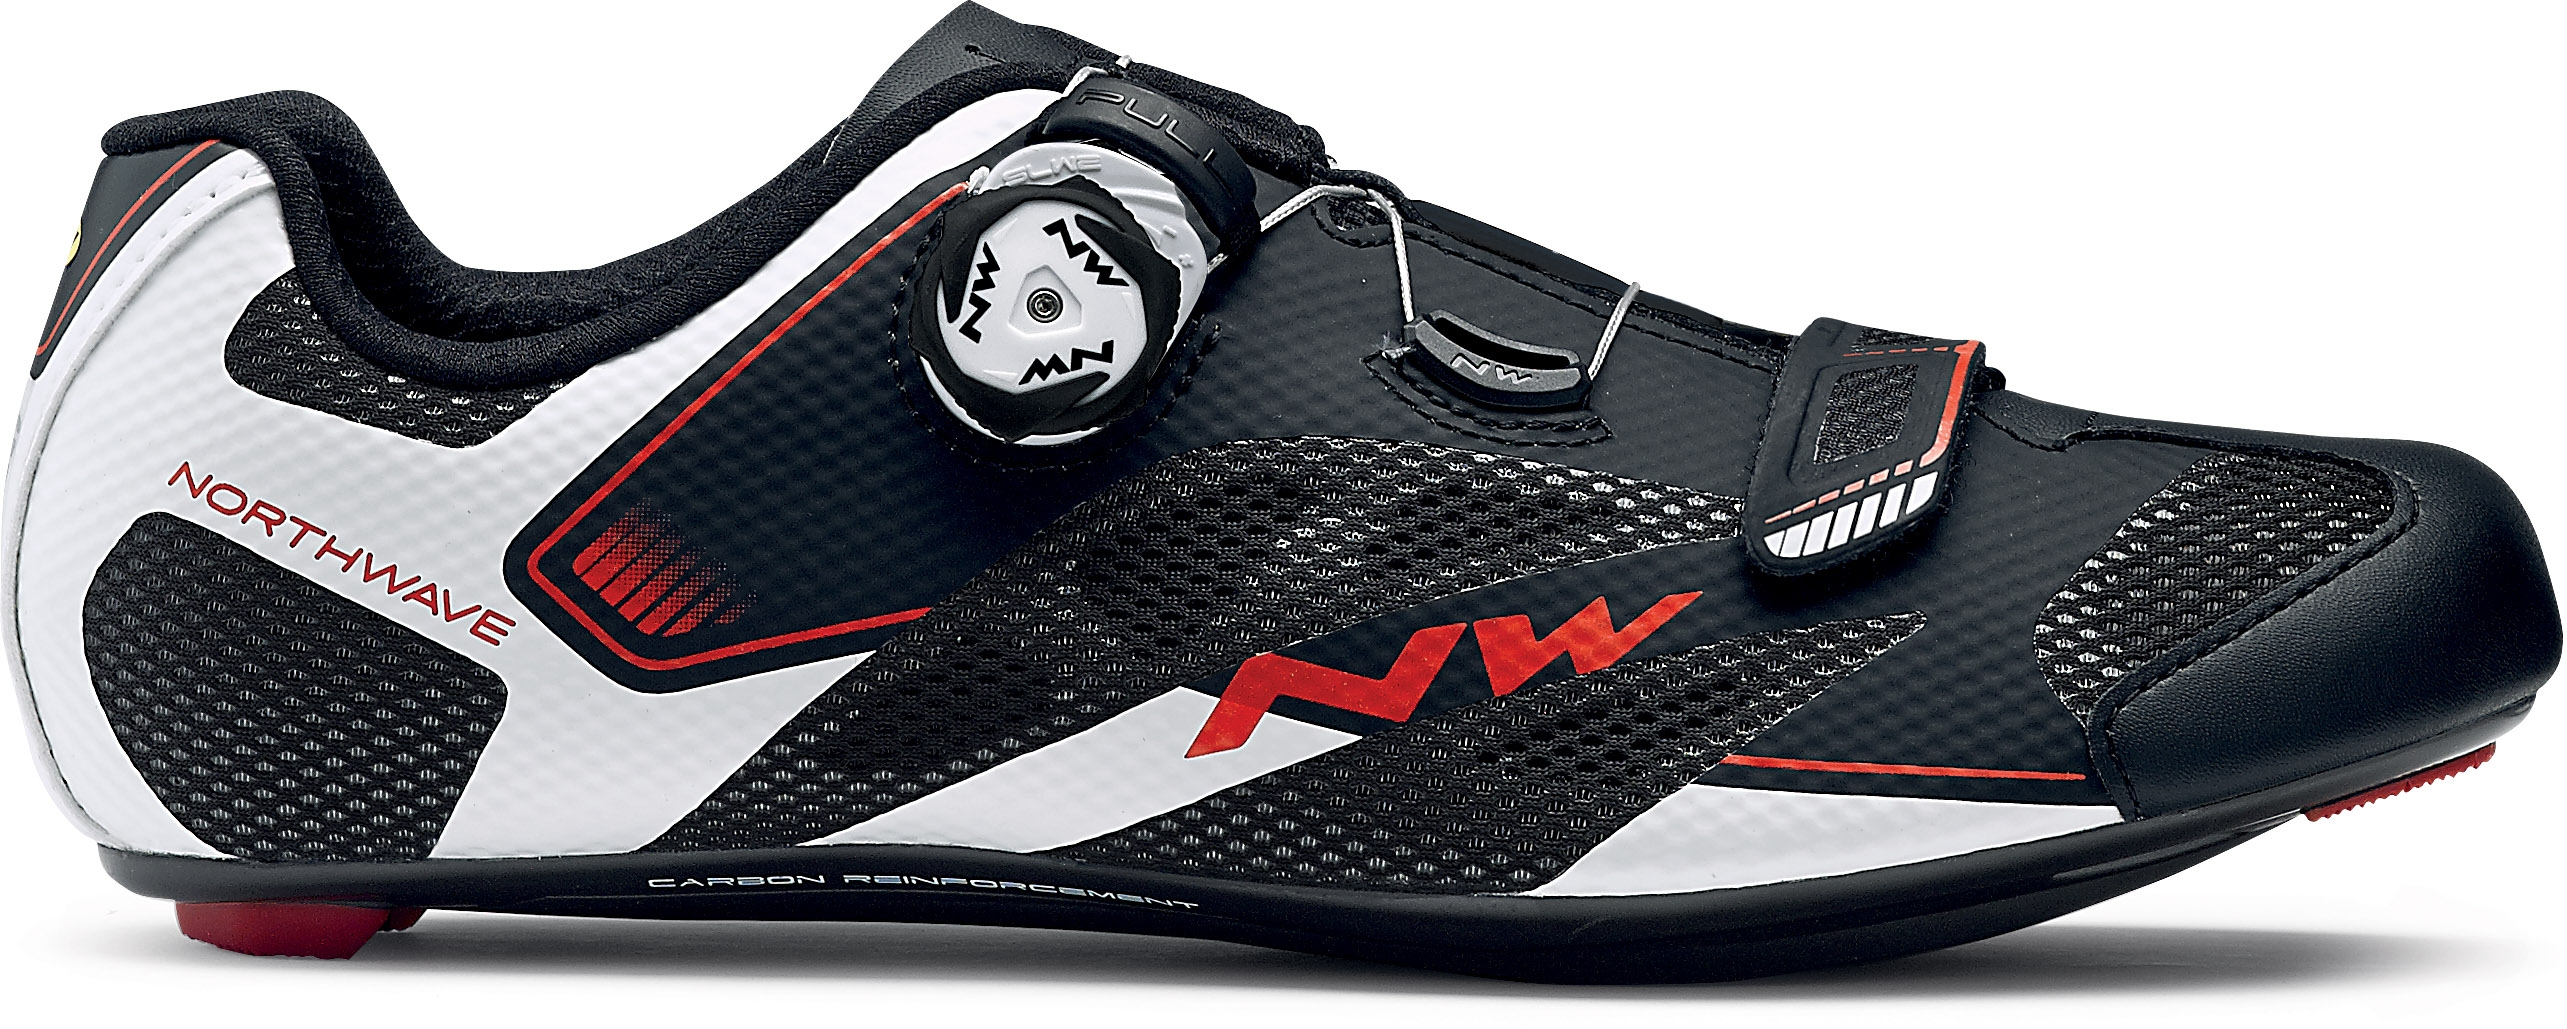 Best price Northwave Man road shoes SONIC 2 PLUS WIDE